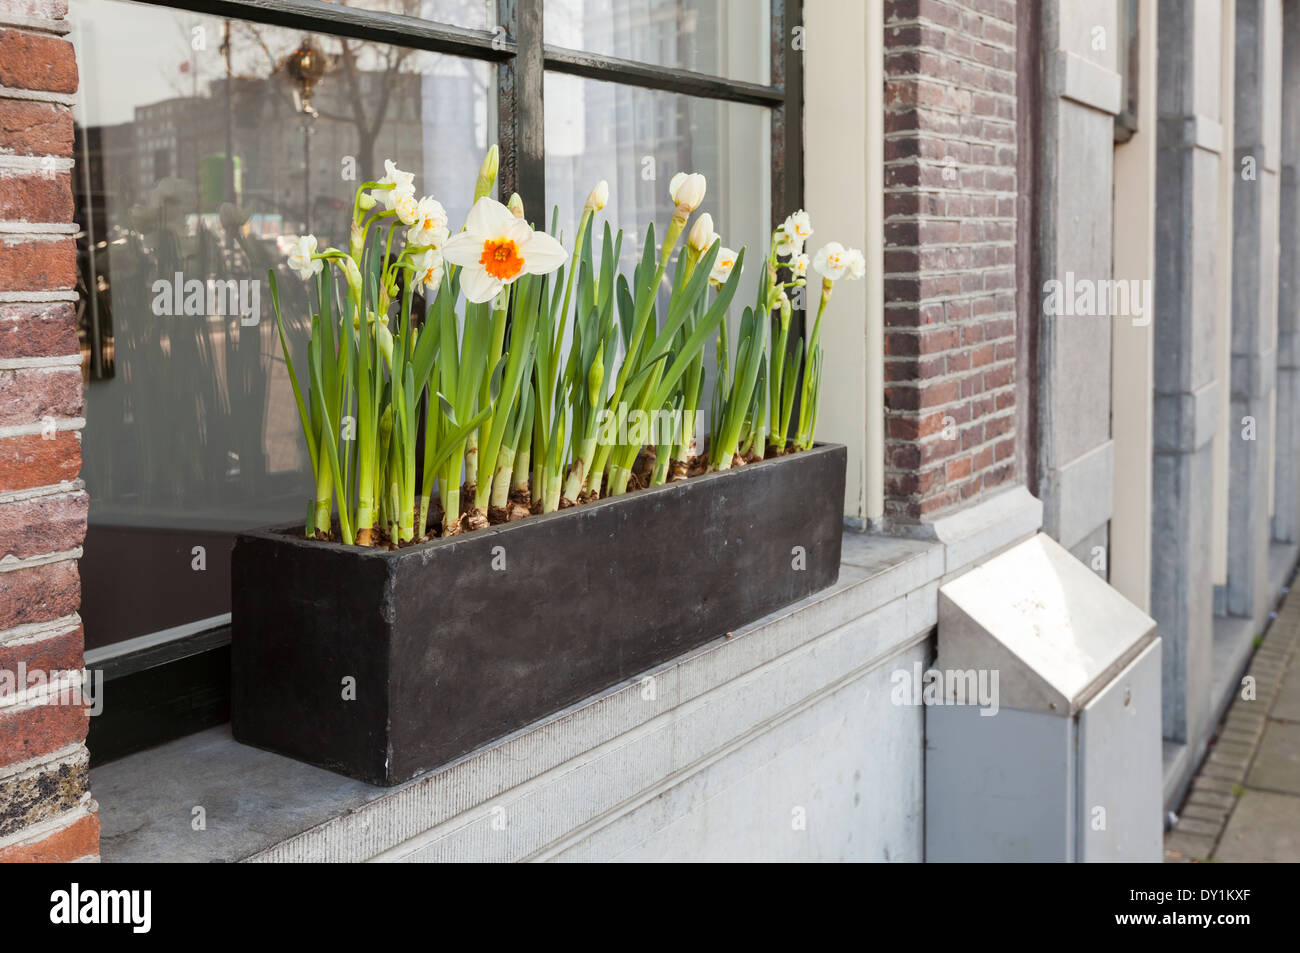 Narcissus flowers grow in wooden box on the windowsill in AmsterdamStock Photo